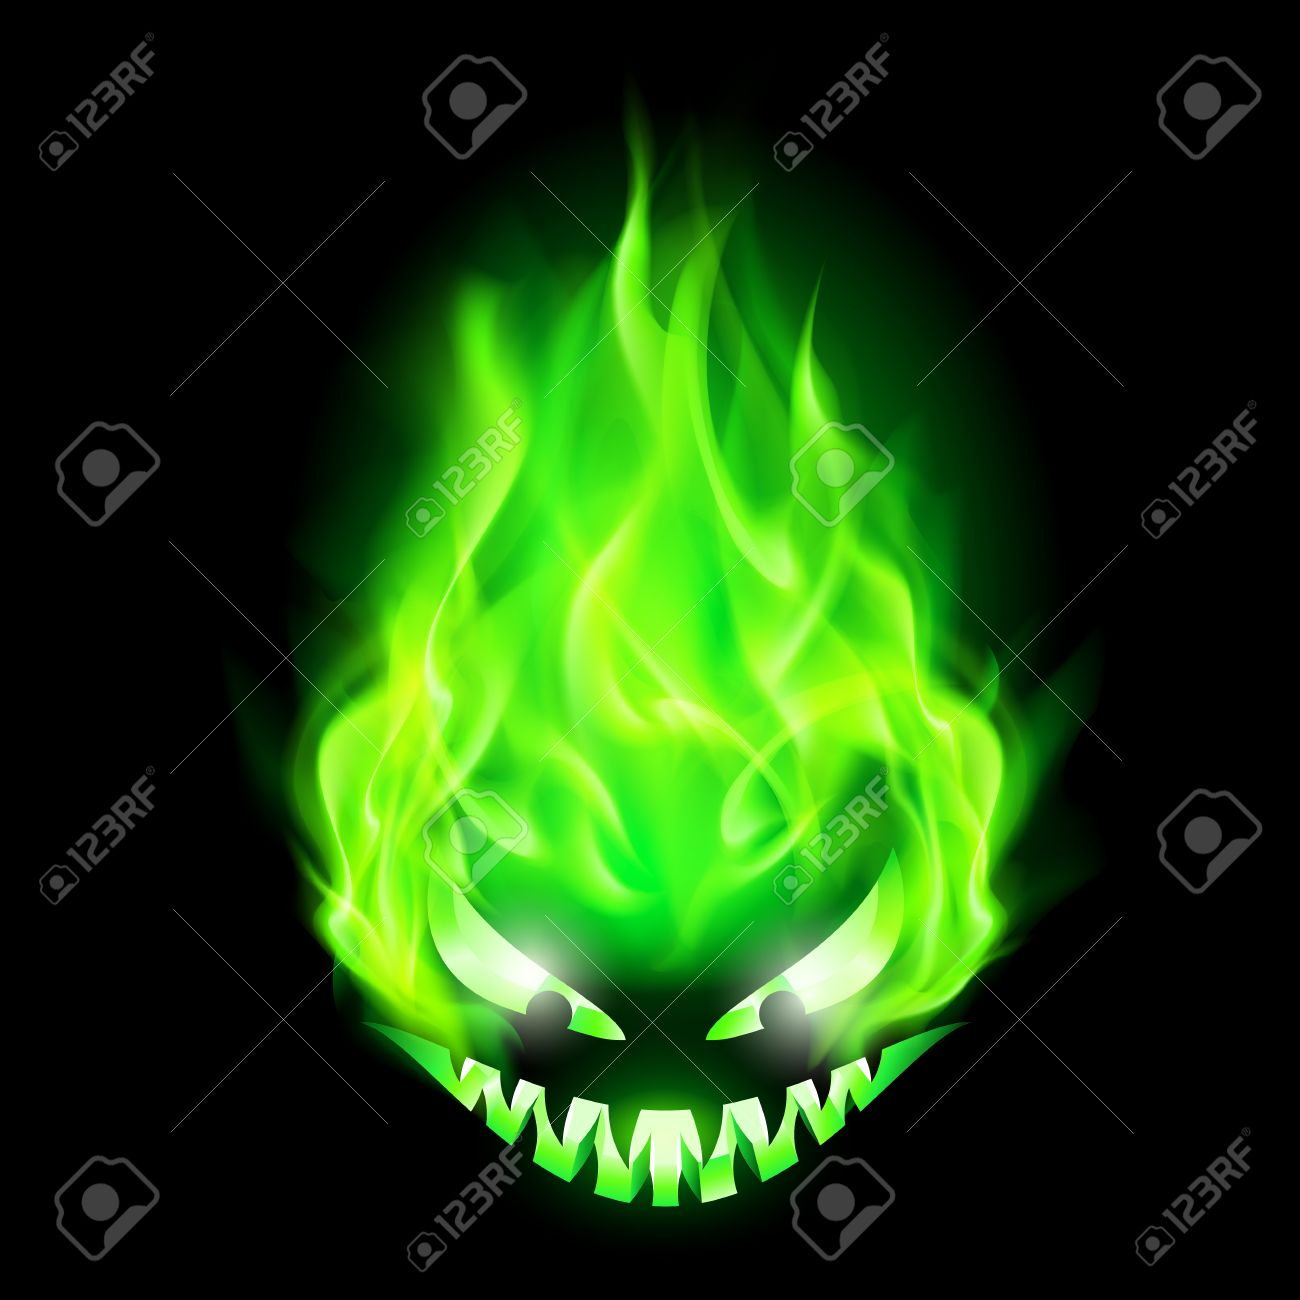 Monster head blazing in green on black background. Stock Vector - 22910094